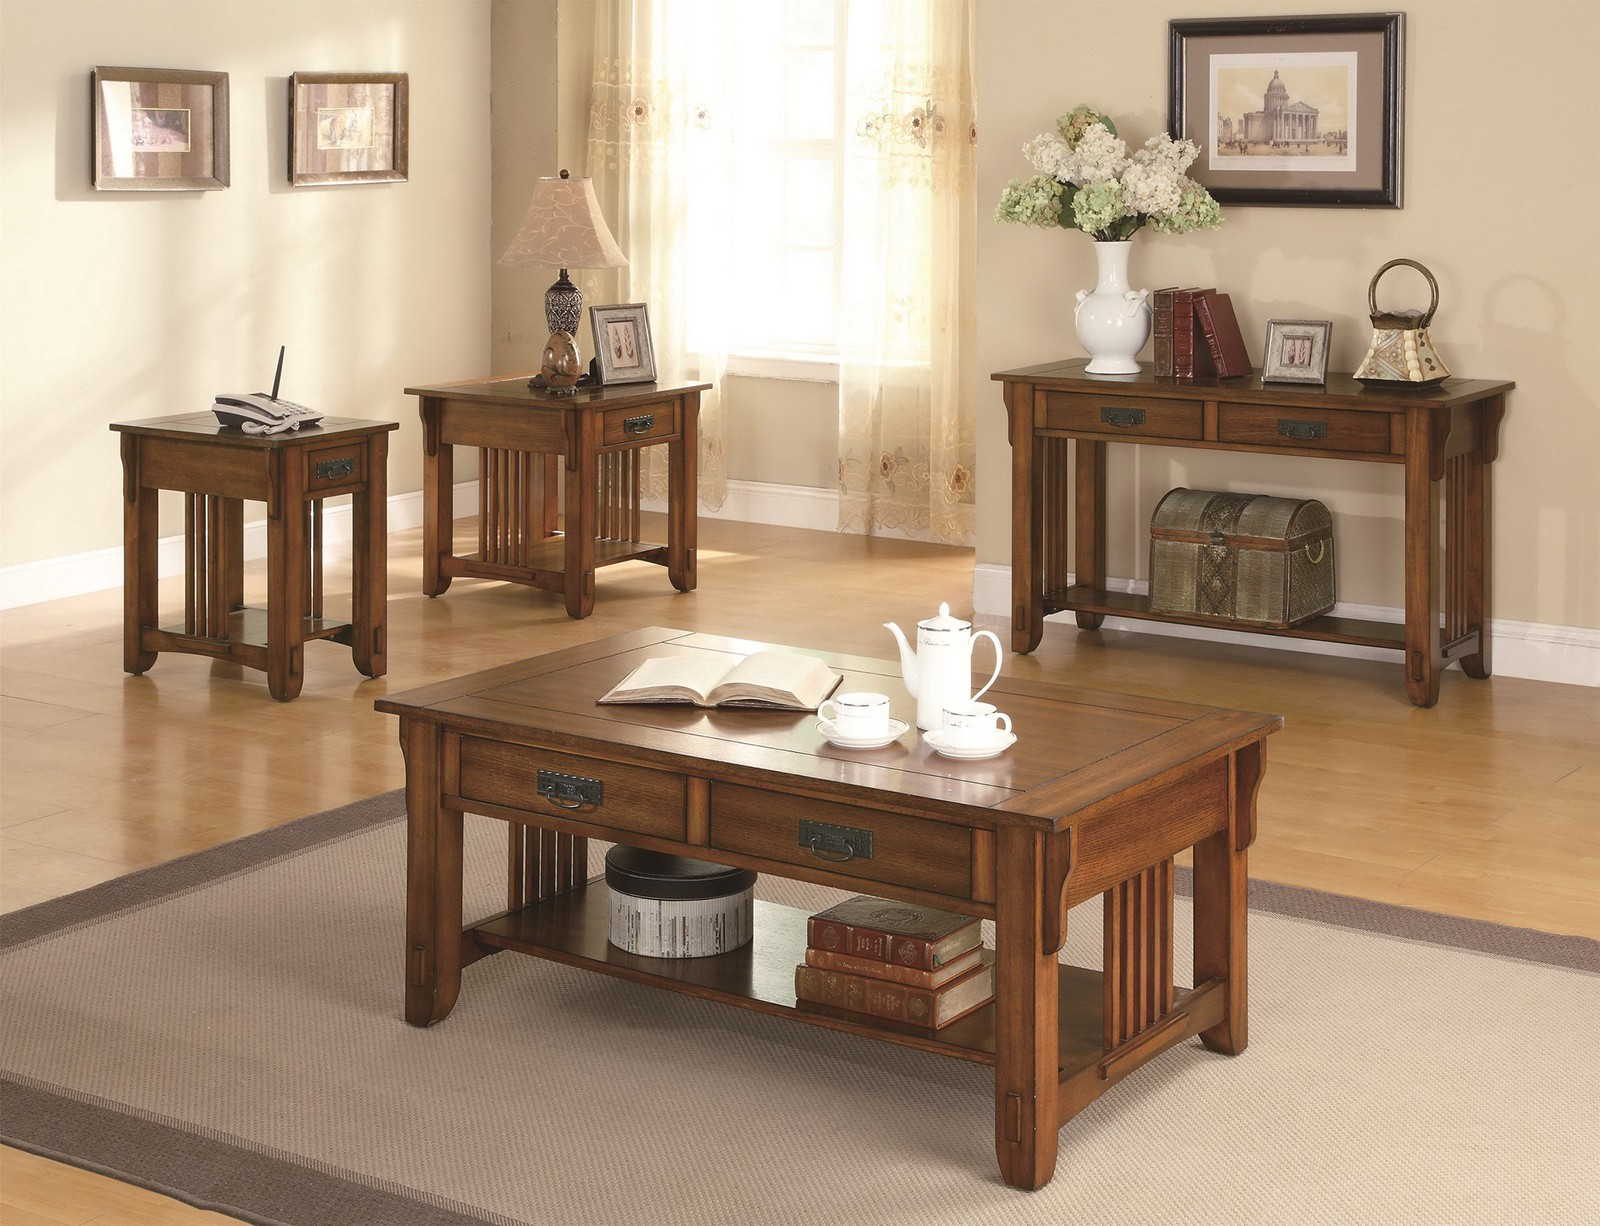 Mission Style Furniture B A Stores Furniture Us Medium